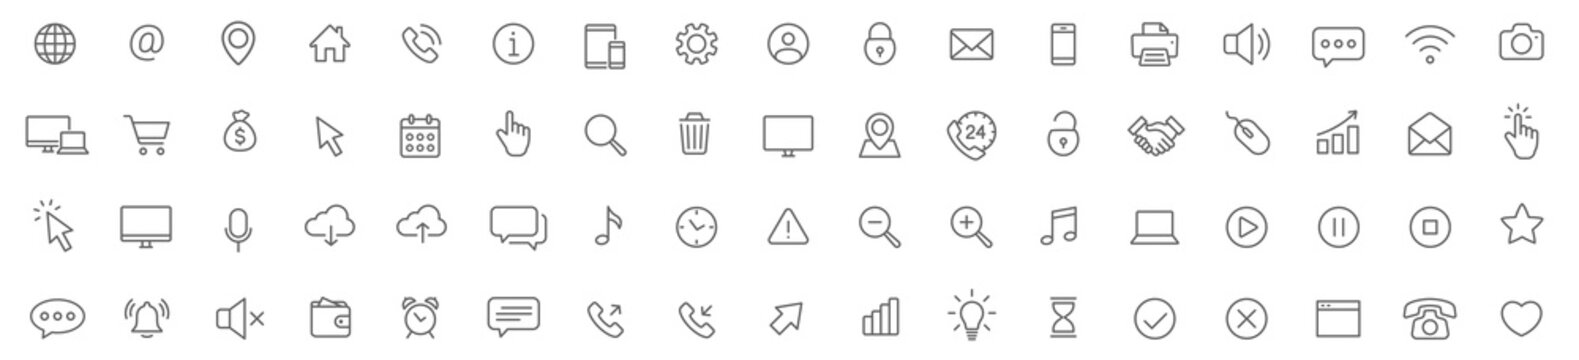 Web line icons set. Web, device, internet, seo thin simple icons. Editable Stroke - stock vector.